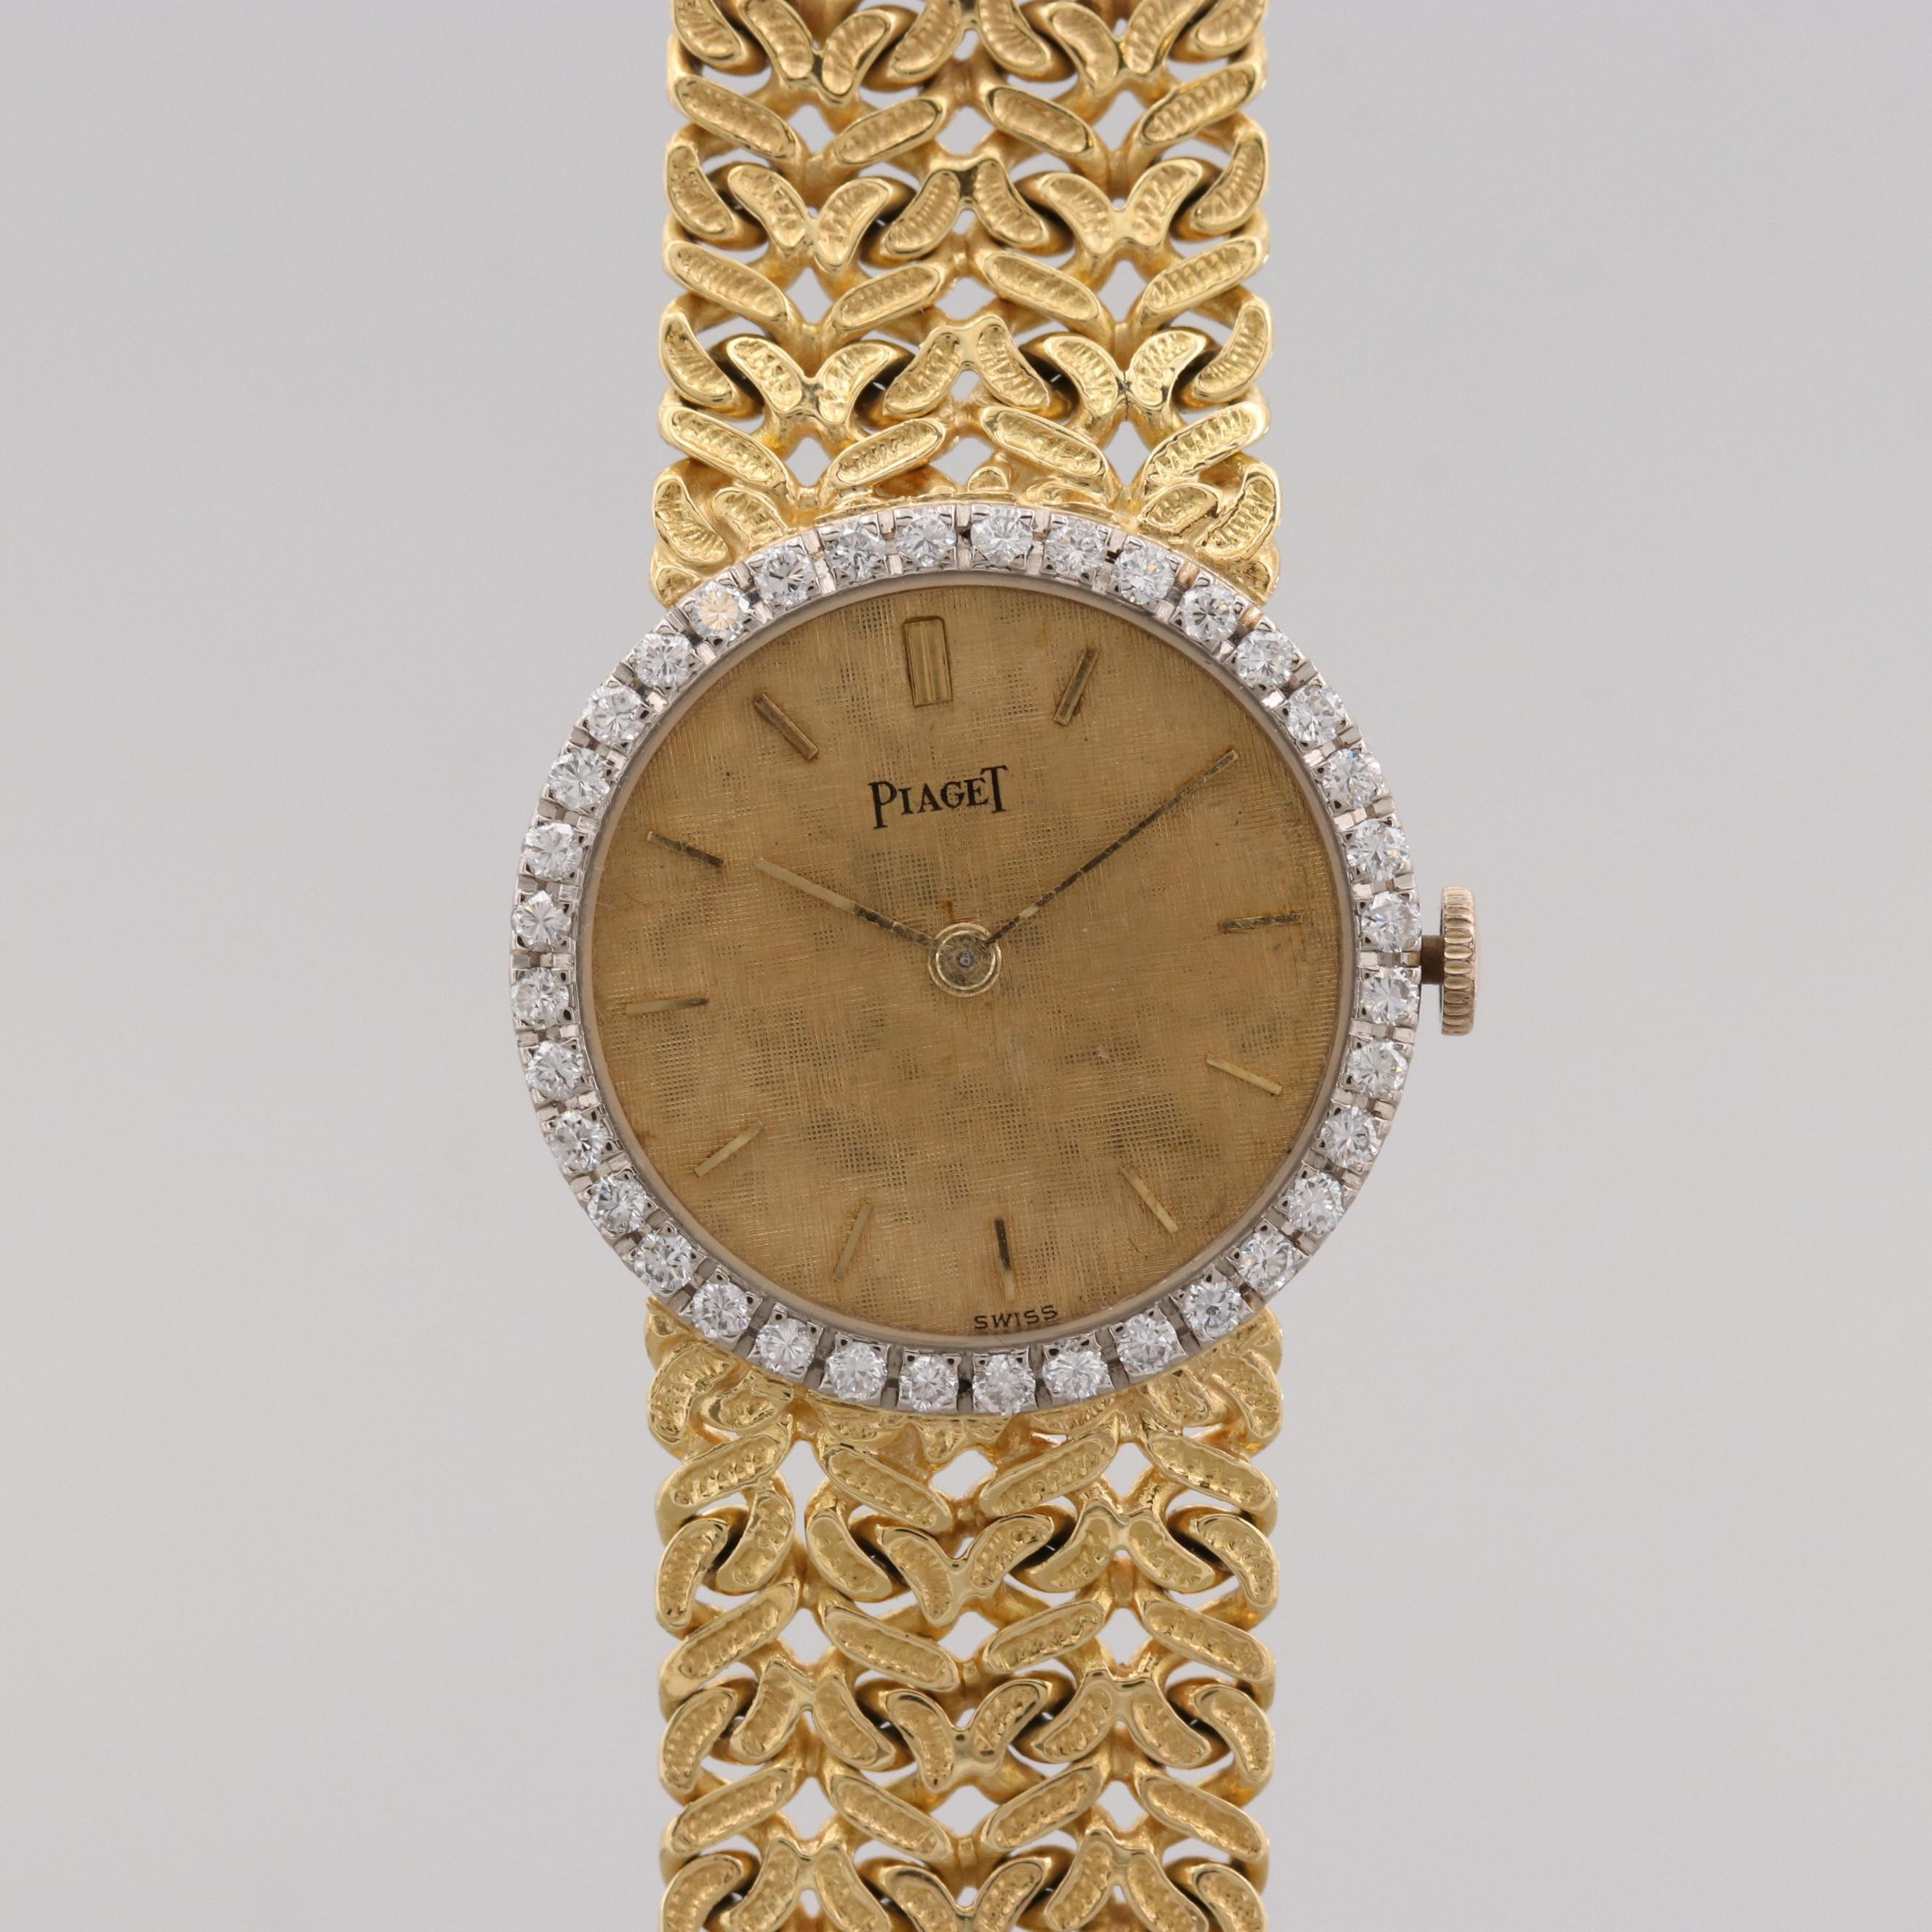 Piaget 18K Yellow Gold and Diamond Bezel Stem Wind Wristwatch